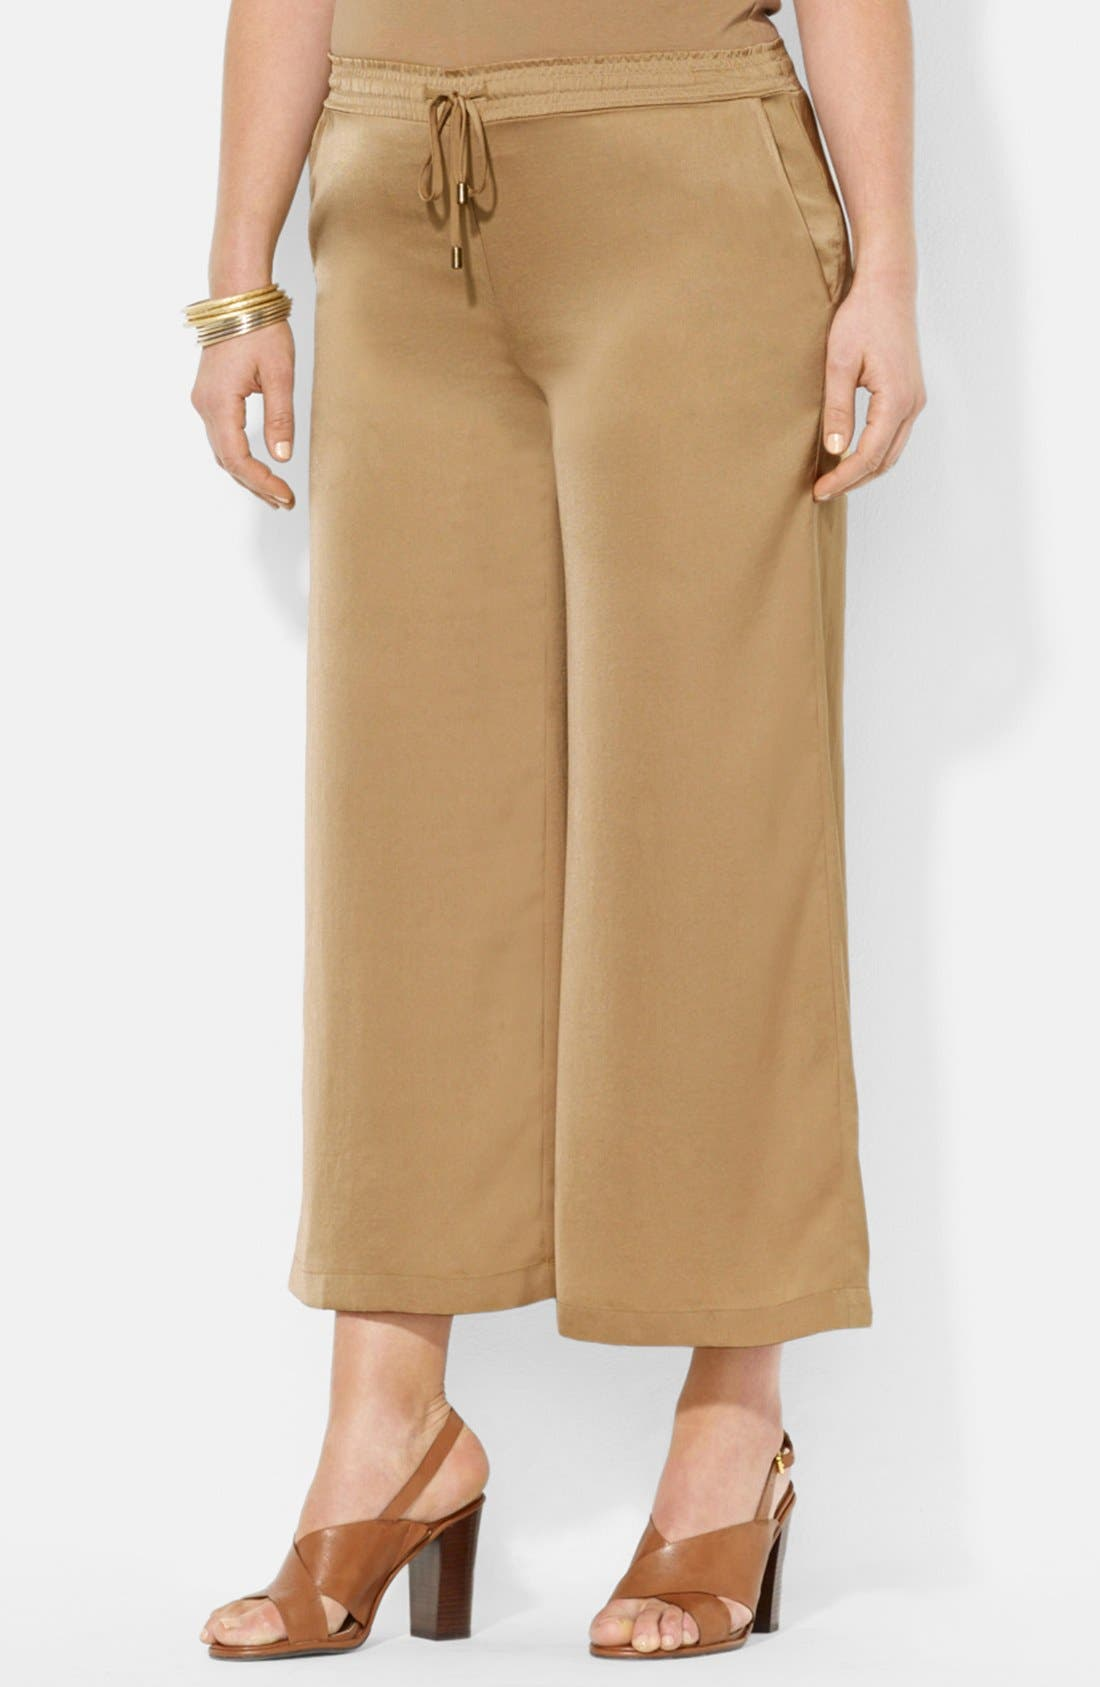 Alternate Image 1 Selected - Lauren Ralph Lauren Wide Leg Crop Pants (Plus Size)